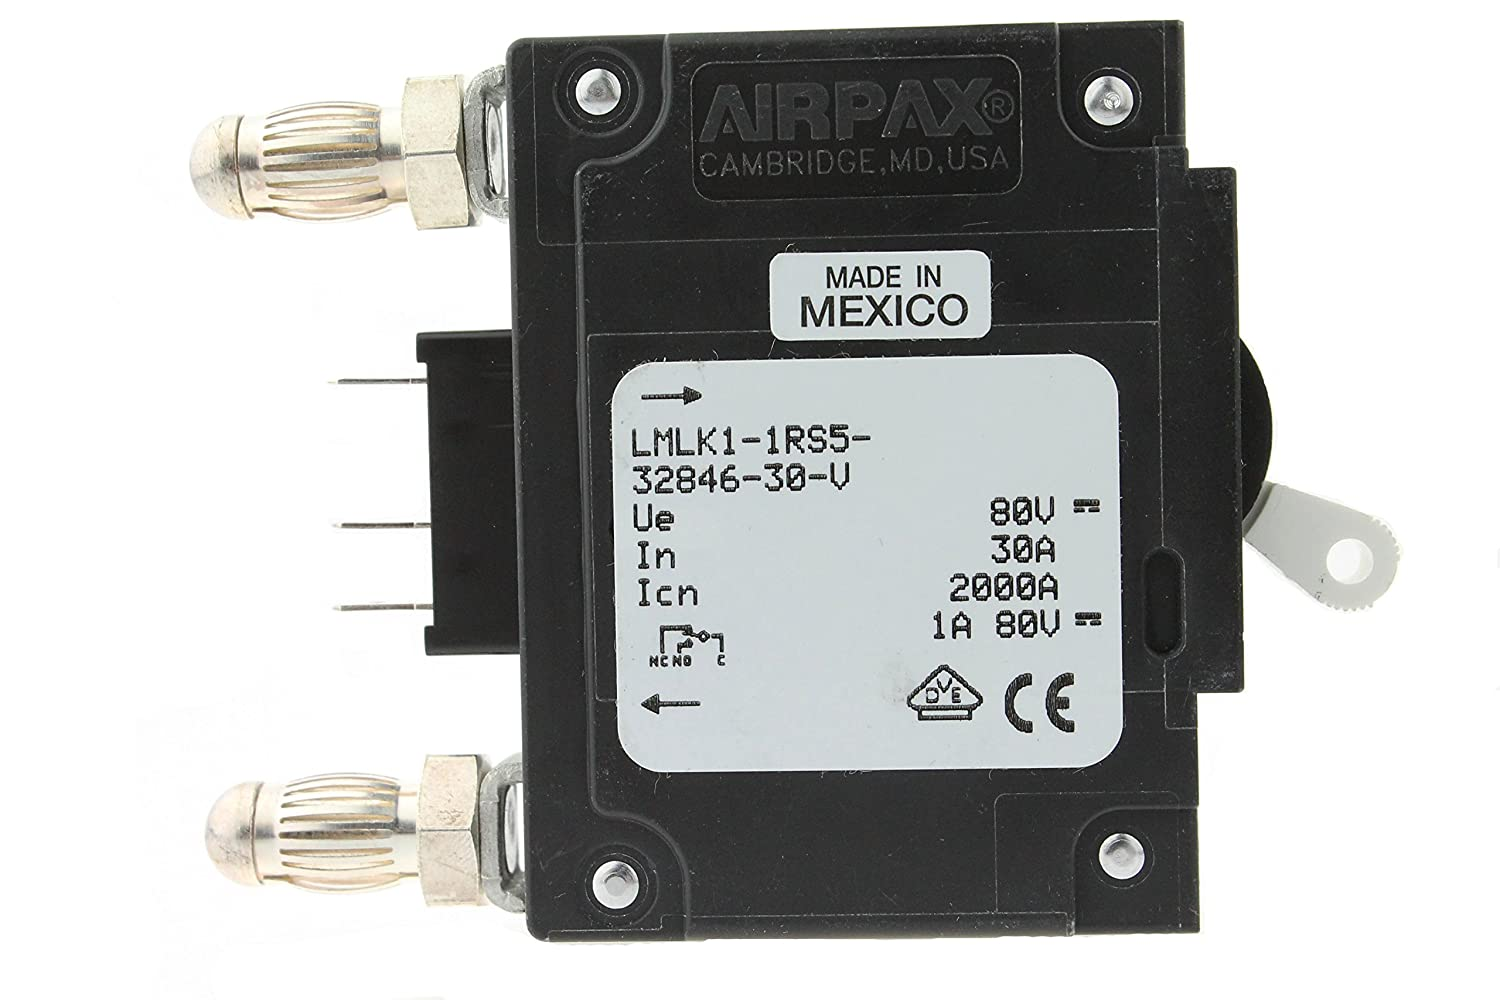 Airpax Circuit Breaker Lmlk1 1rs5 32846 30 V 30a Bullet Amp 3 4 In Doublepole Type Ch Breakerch230 The Home